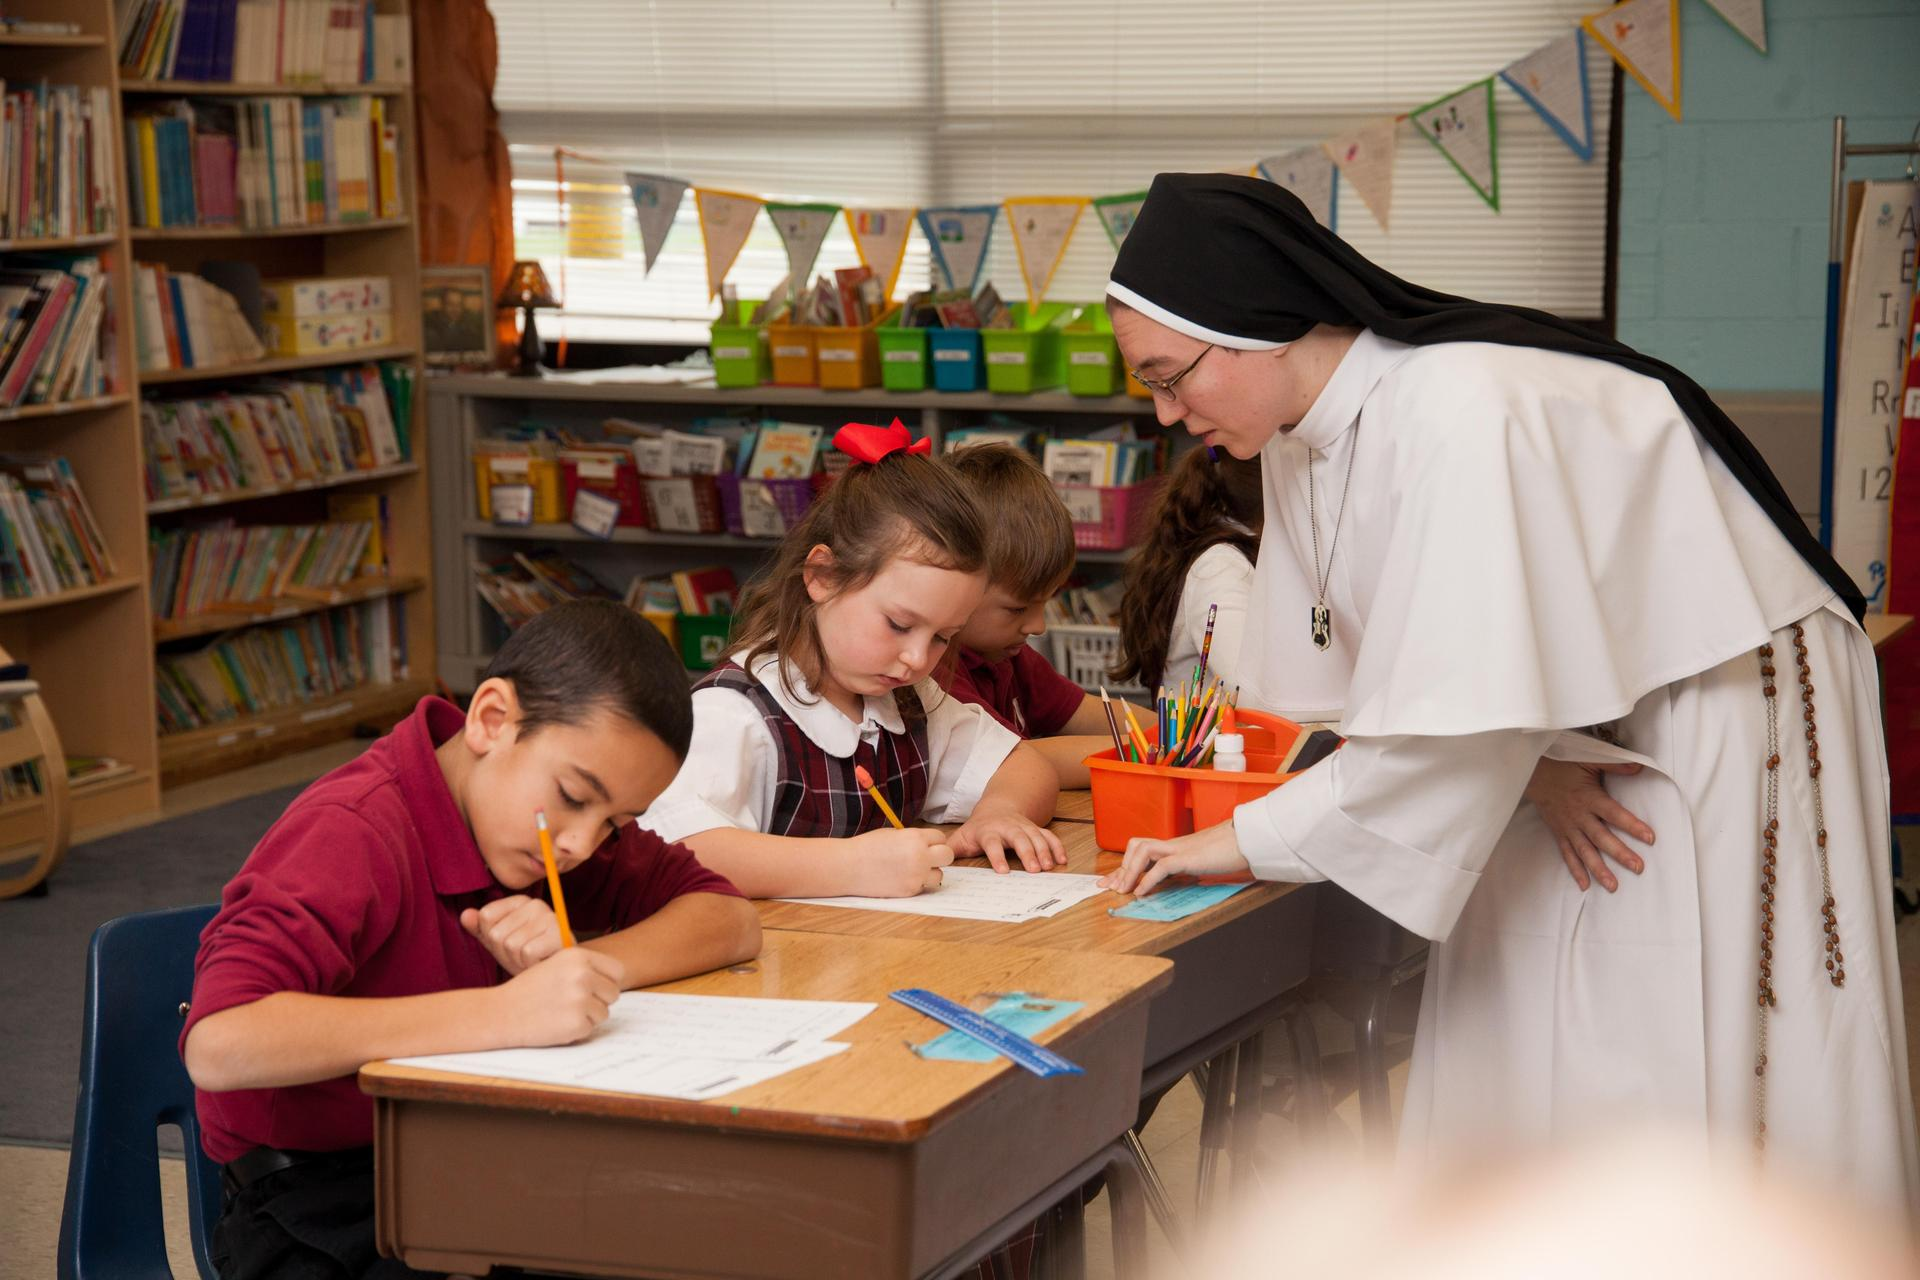 Sister helps students